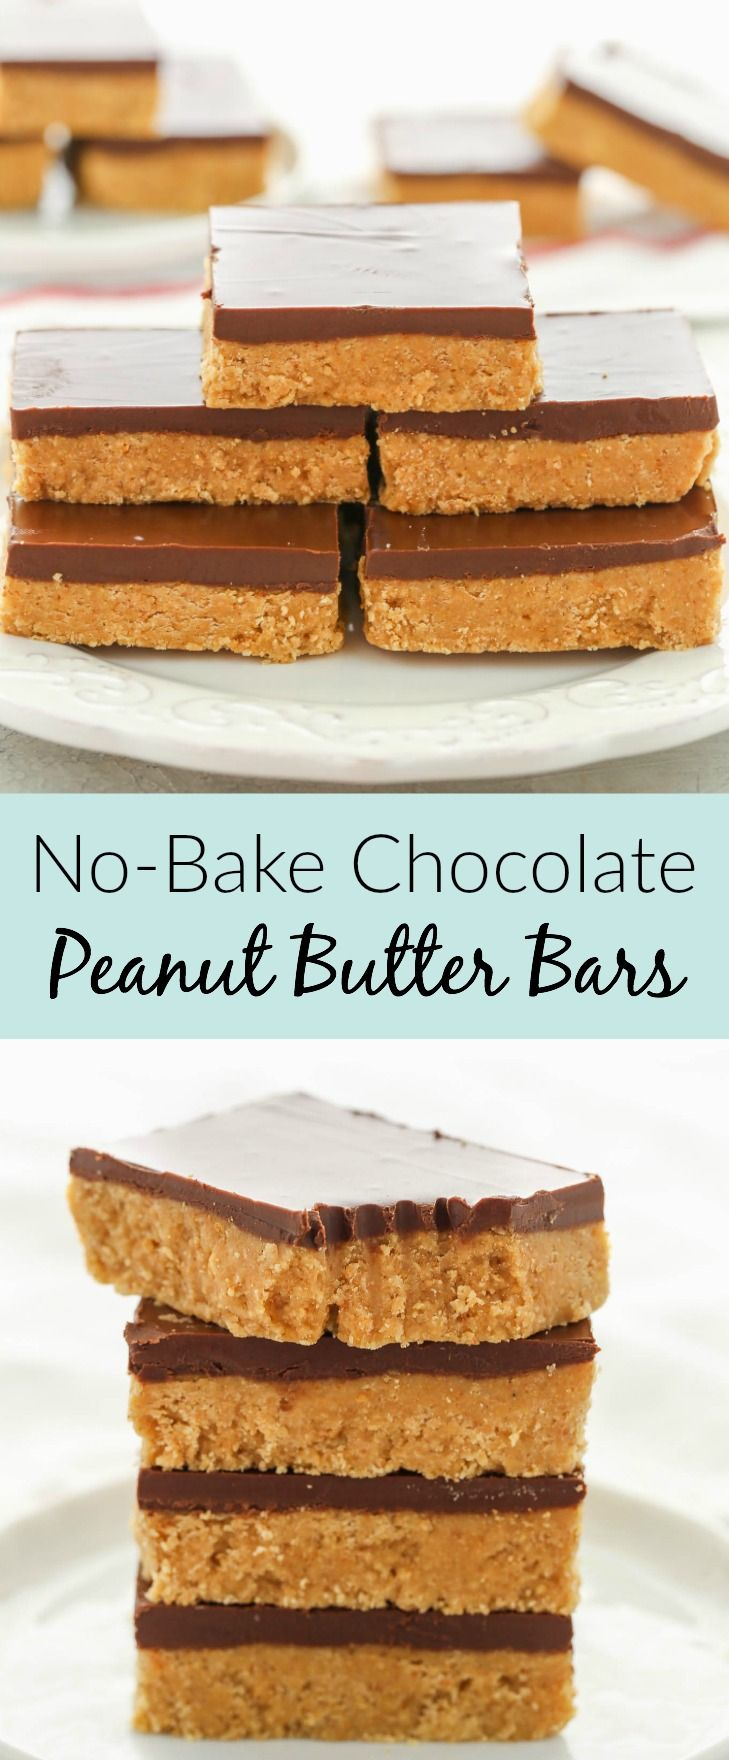 These No-Bake Chocolate Peanut Butter Bars only re…